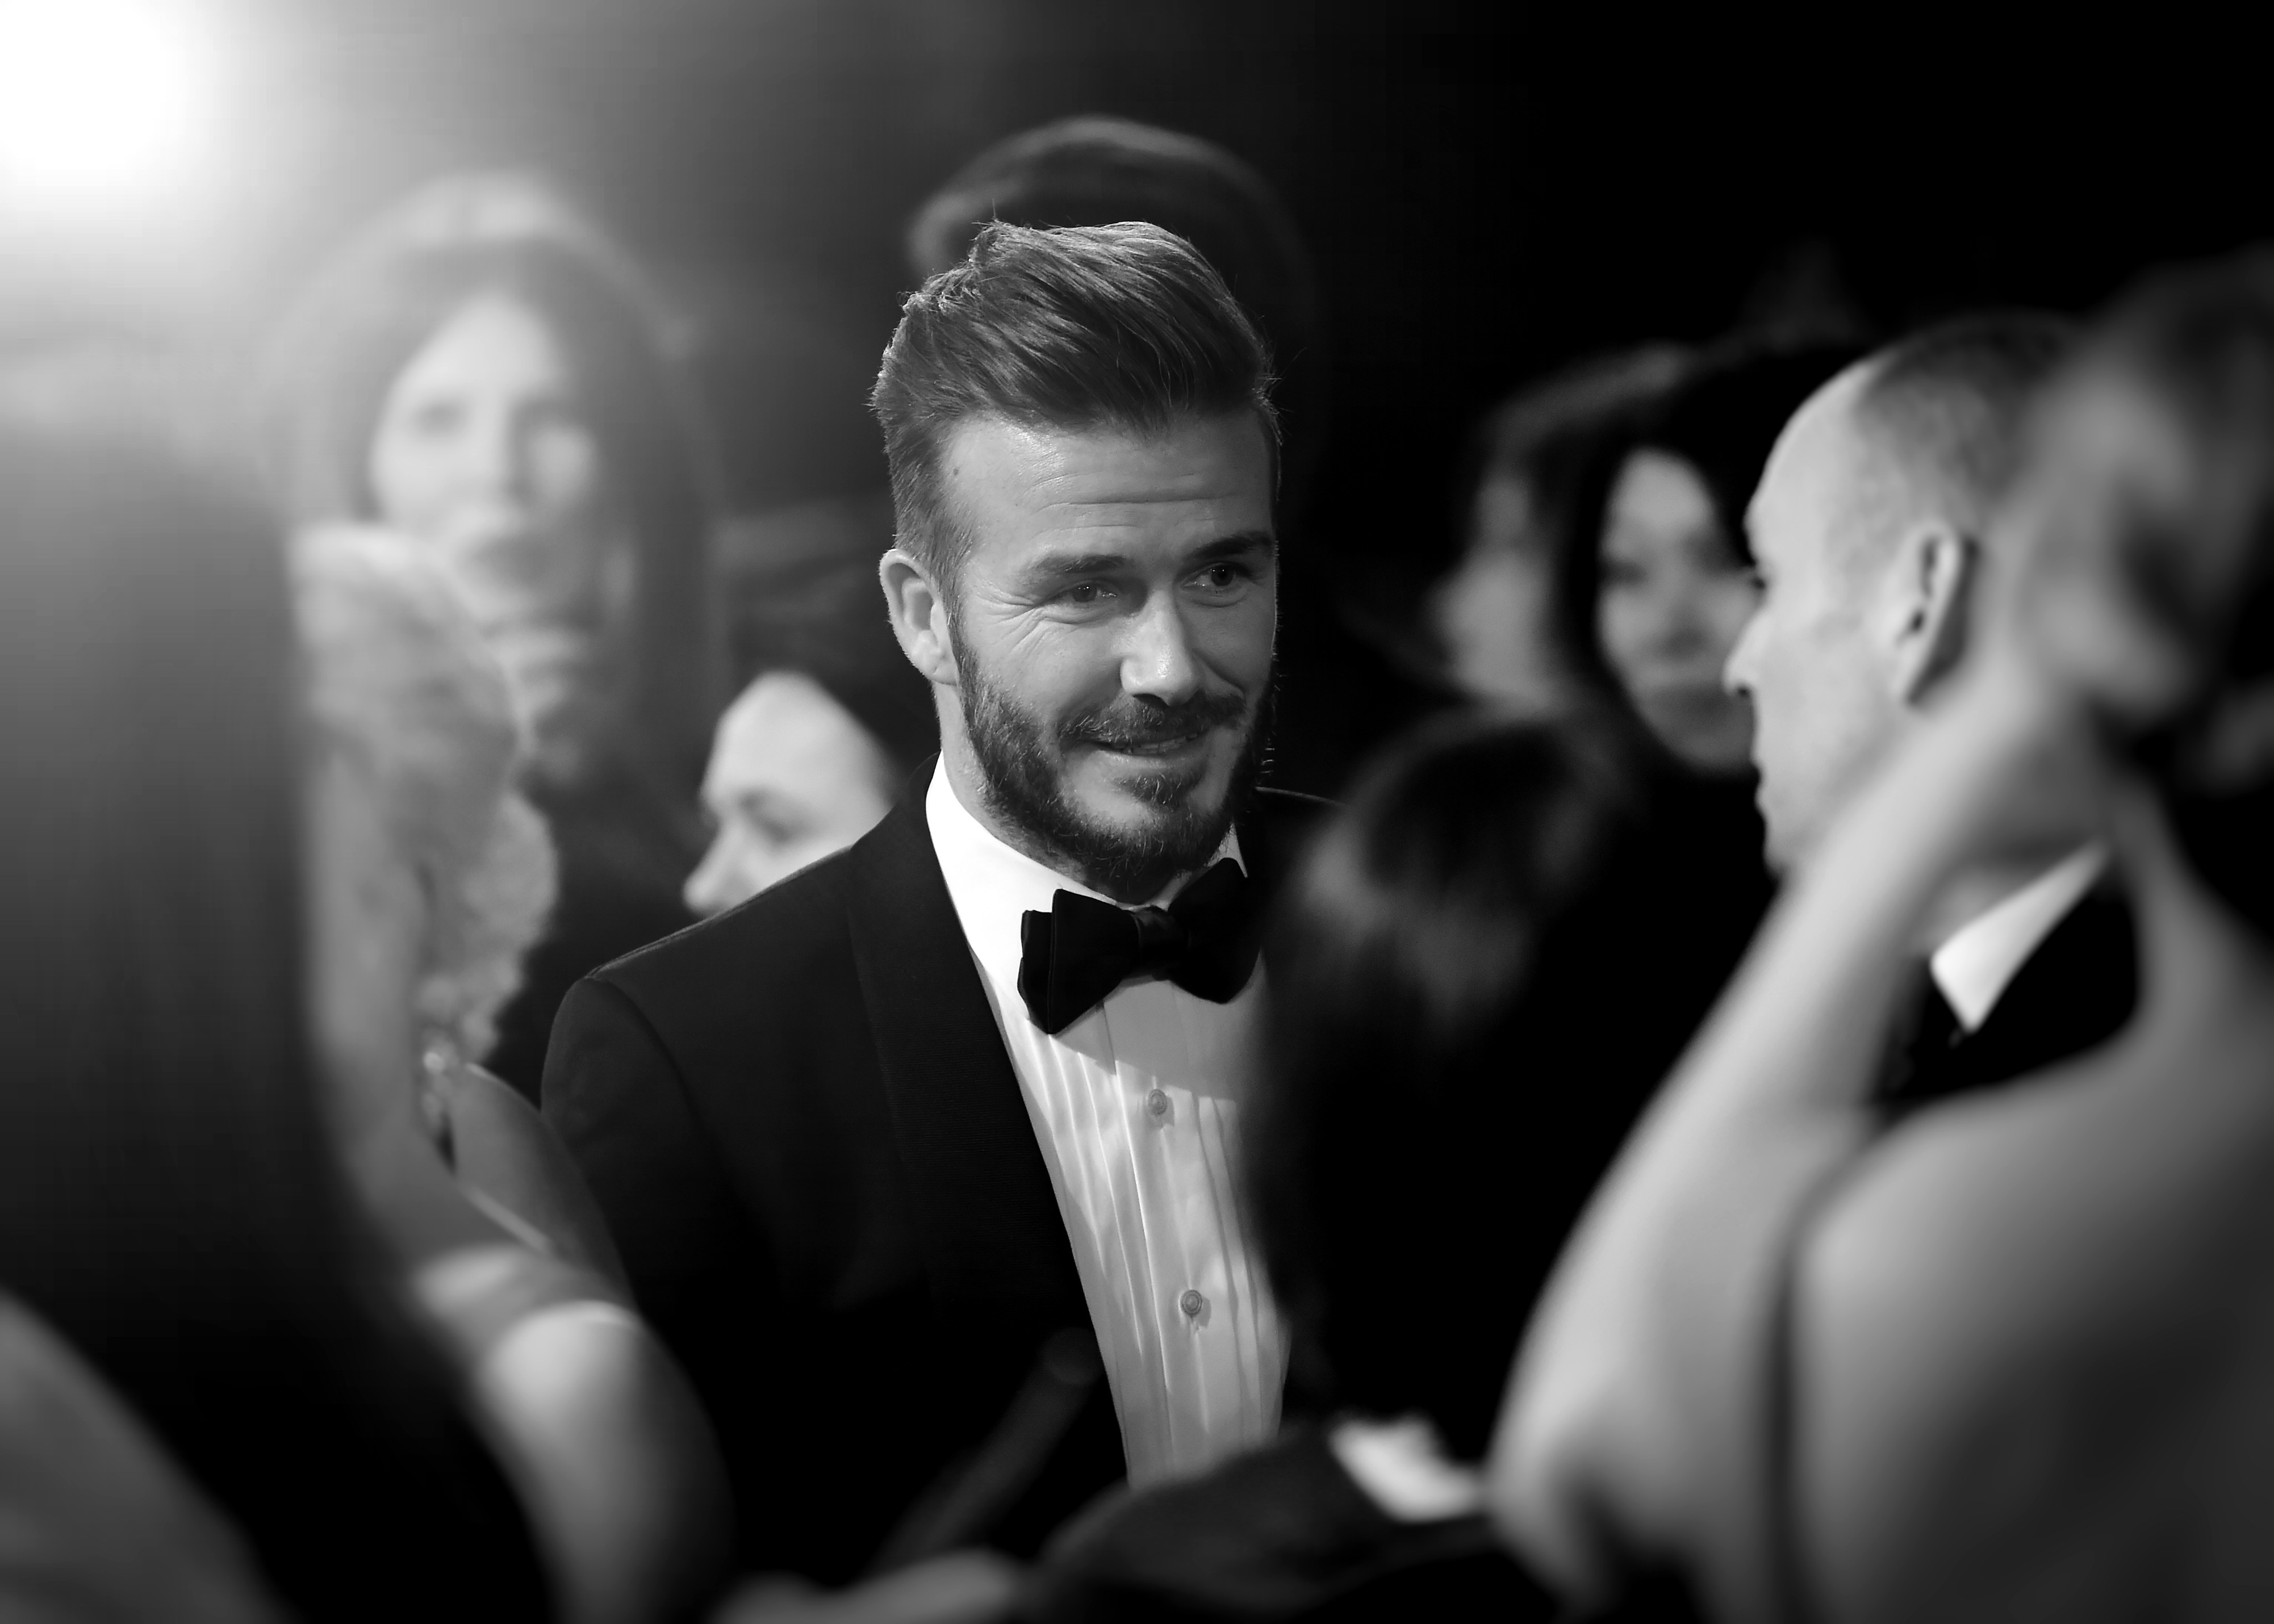 Fall Wallpaper Horses David Beckham Joins Instagram After Cameo On Son Brooklyn